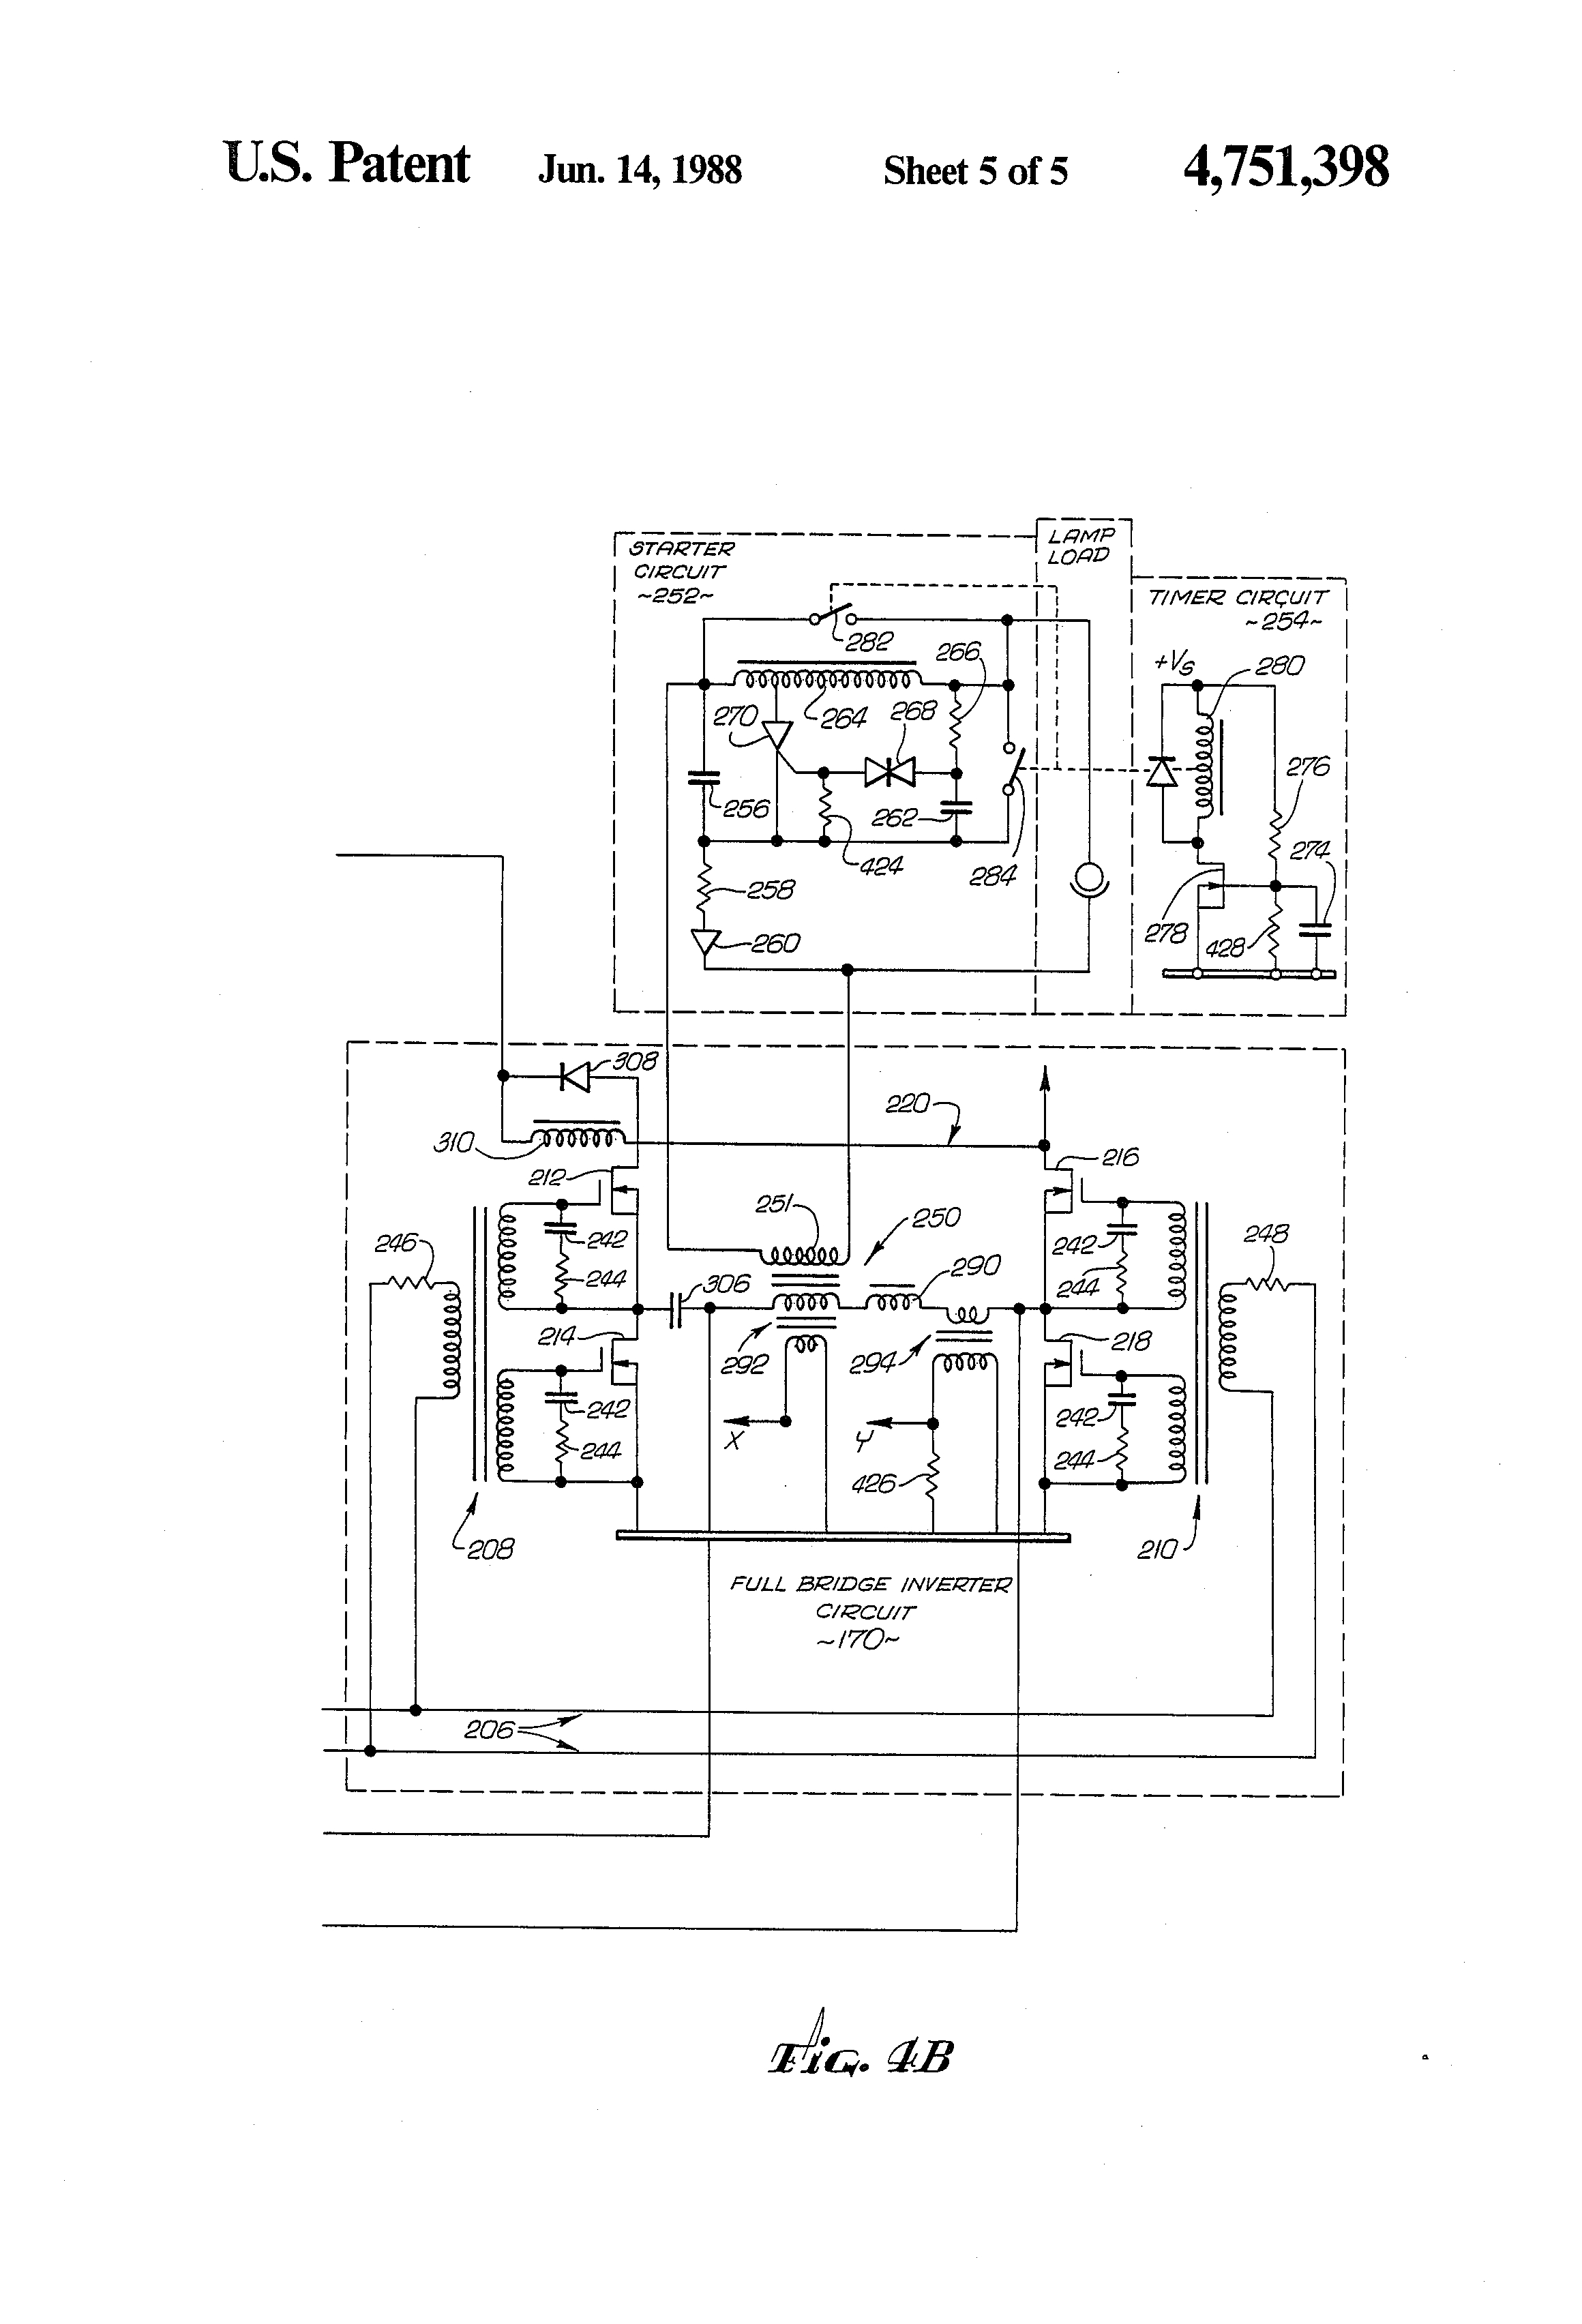 bodine b90 emergency ballast wiring diagram Collection-bodine b90 wiring diagram Best of ponent Led Diagram Symbol Wiring Wire Circuit Cr 6-r